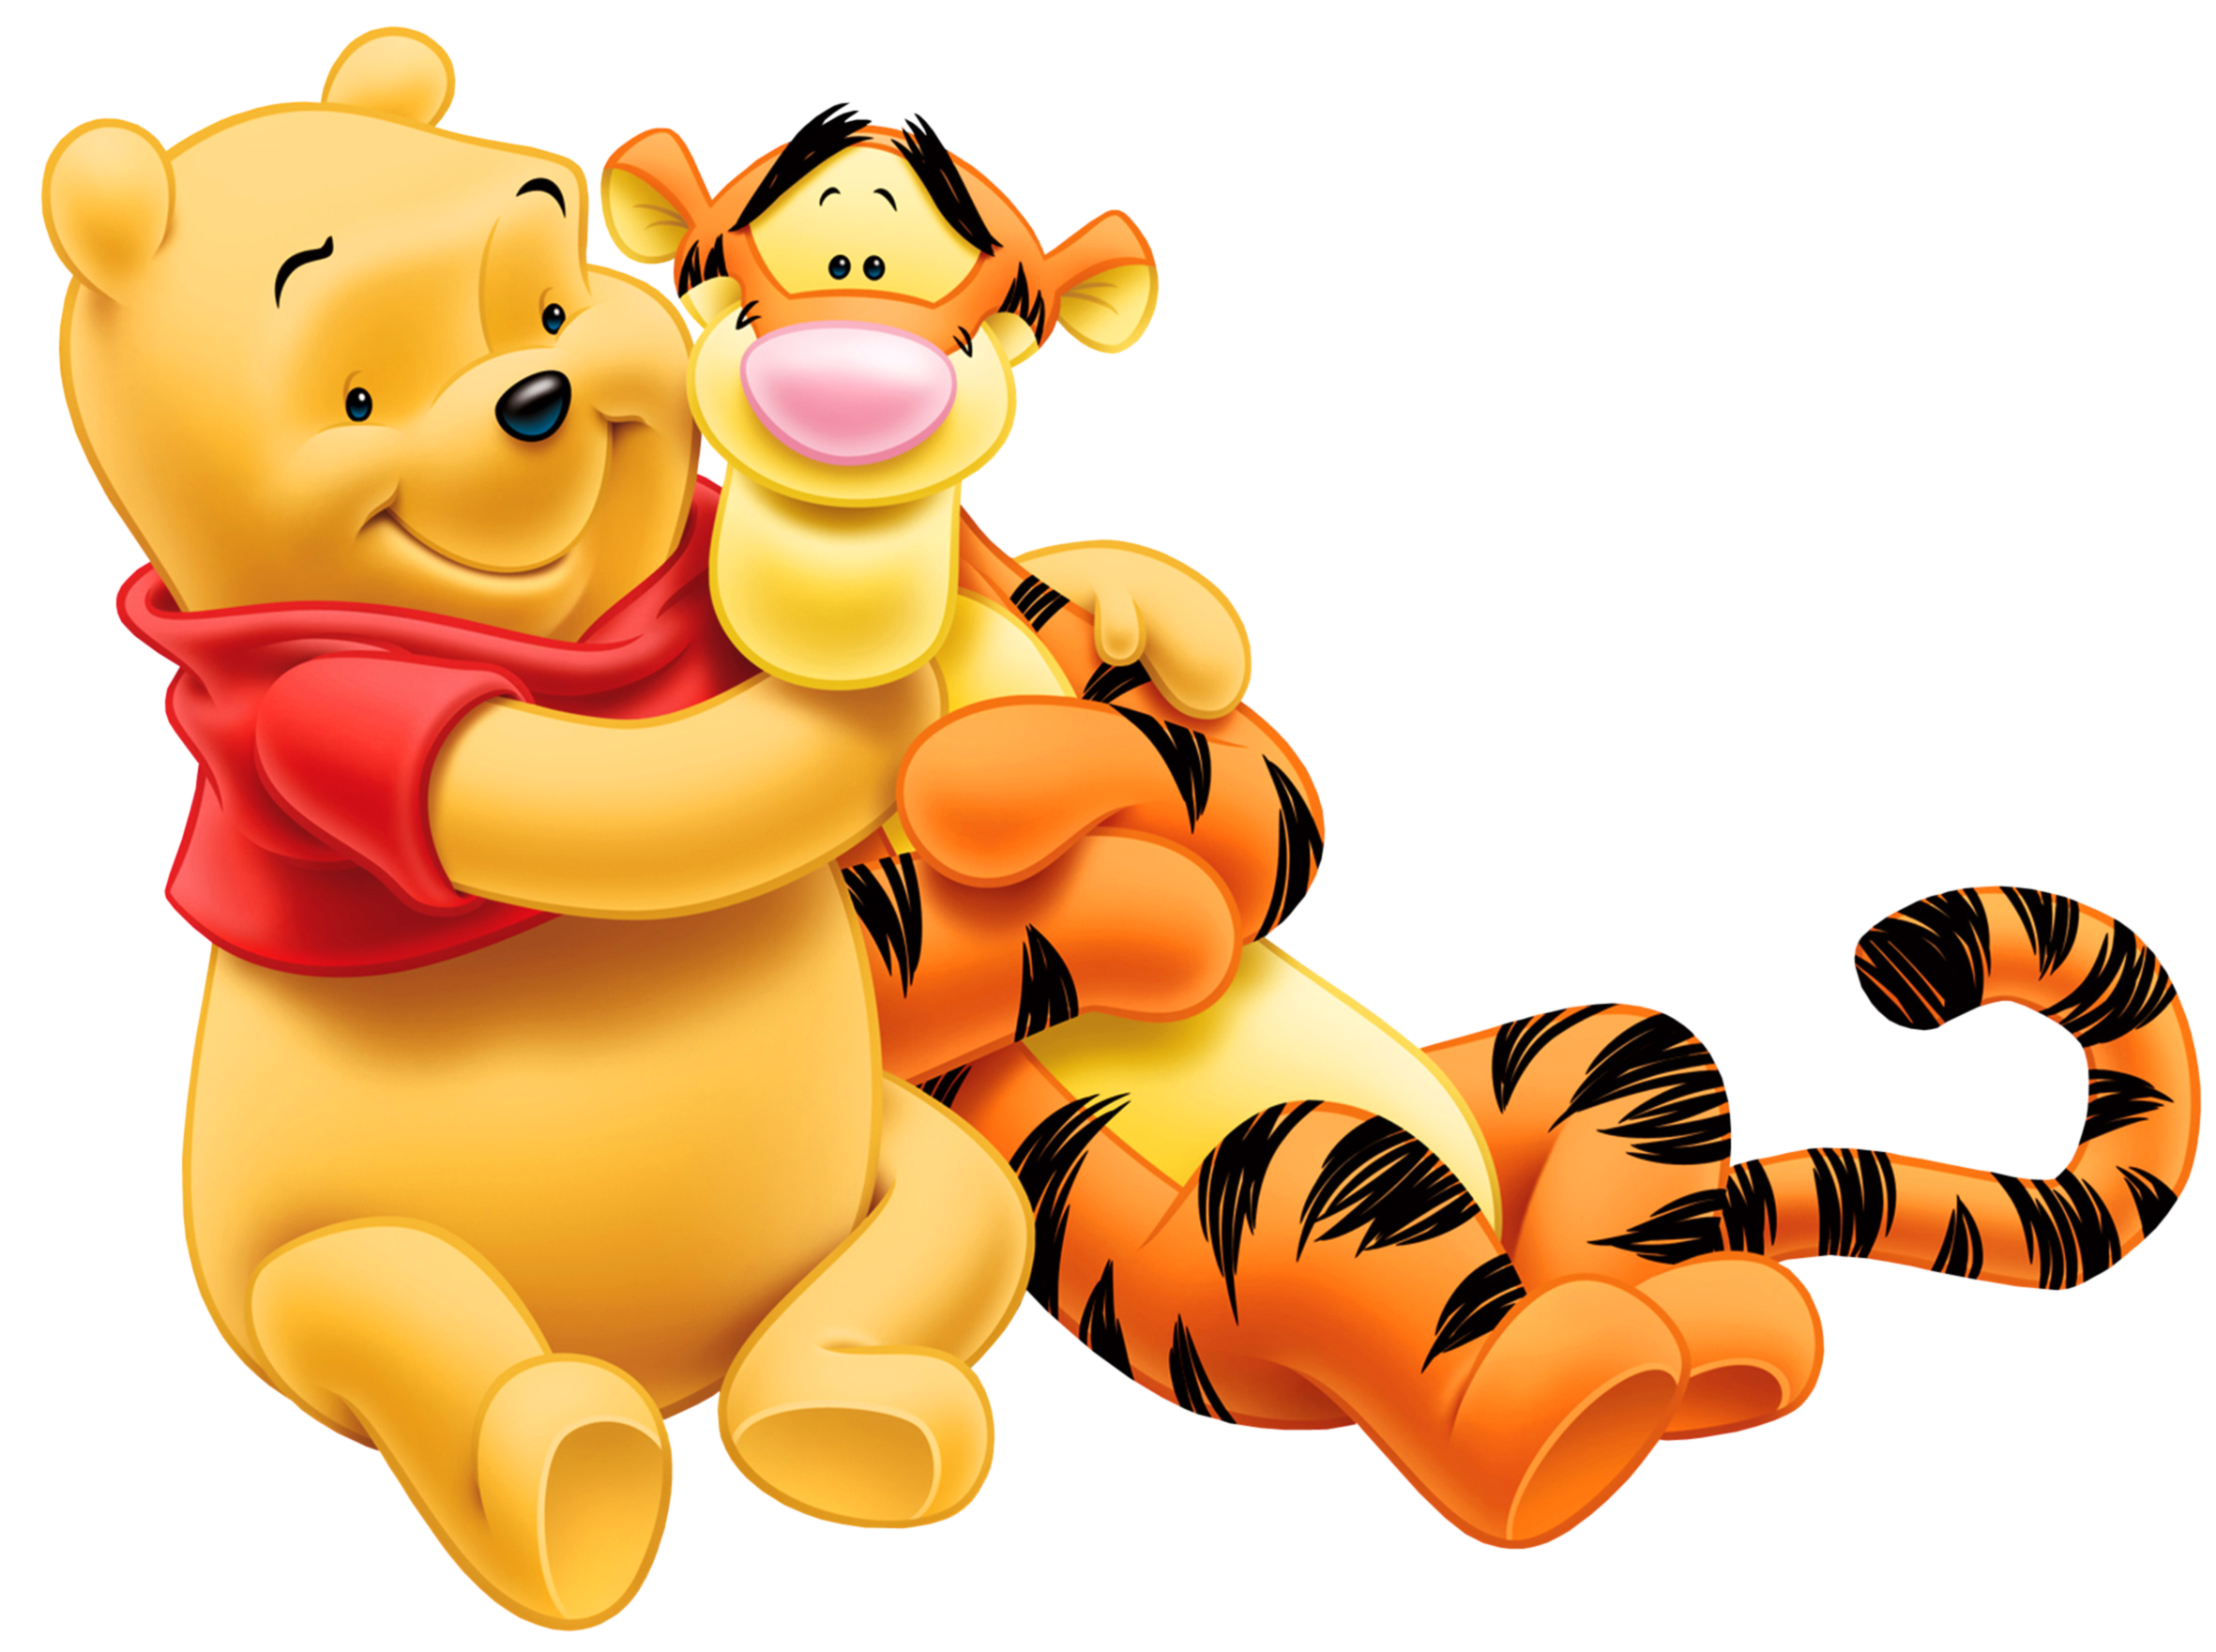 Transparent_Tigger_and_Winnie_the_Pooh_PNG_Cartoon